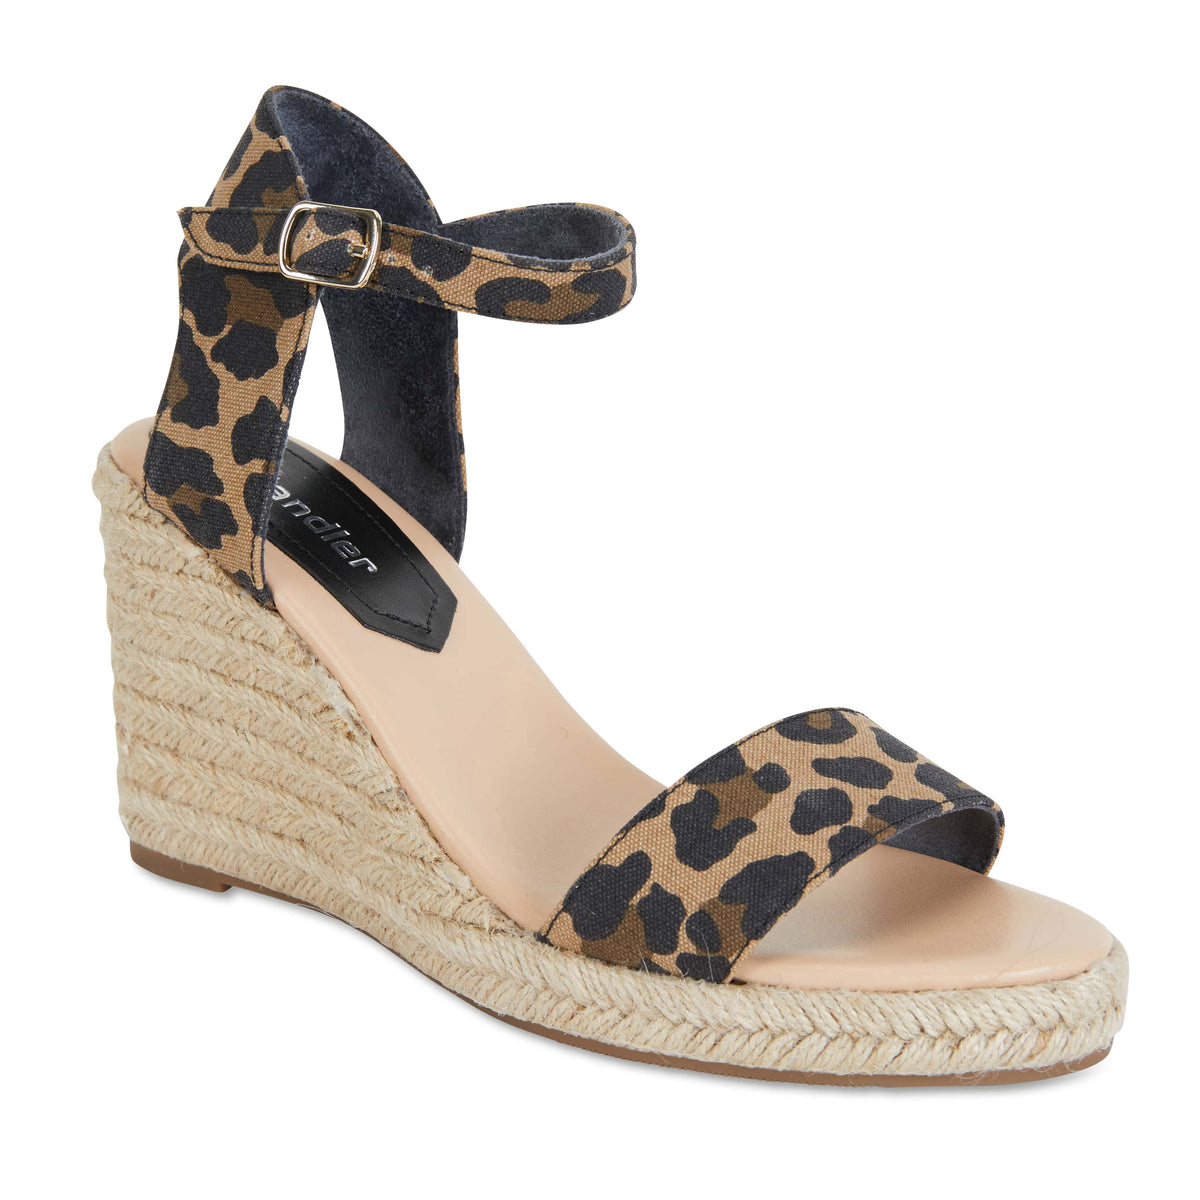 Audrey Espadrille in Animal Fabric